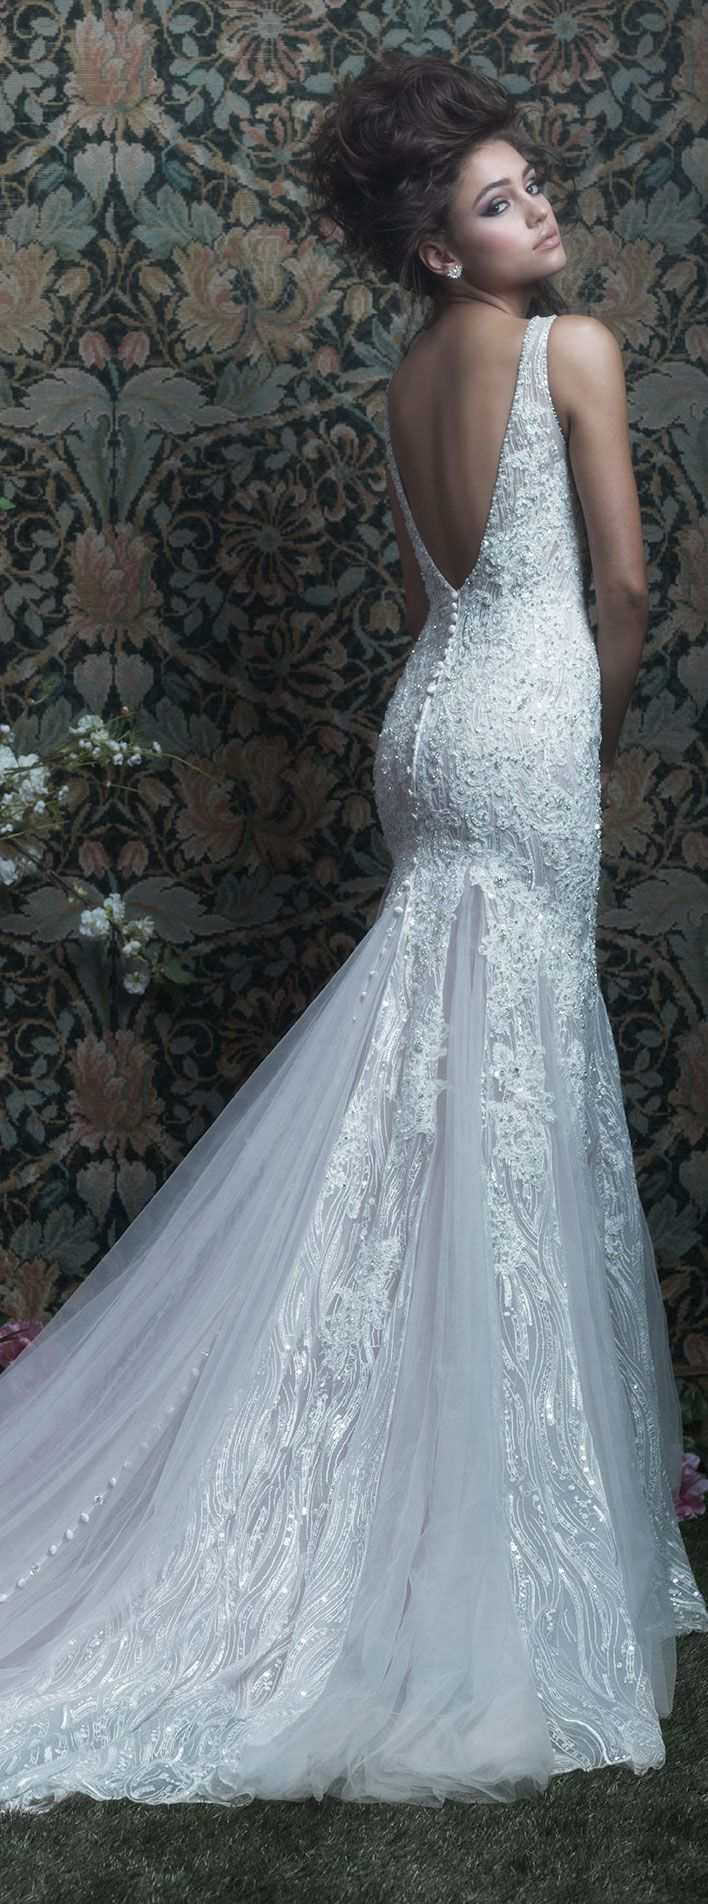 Wedding Dress by Allure Couture 2017 | @allurebridals